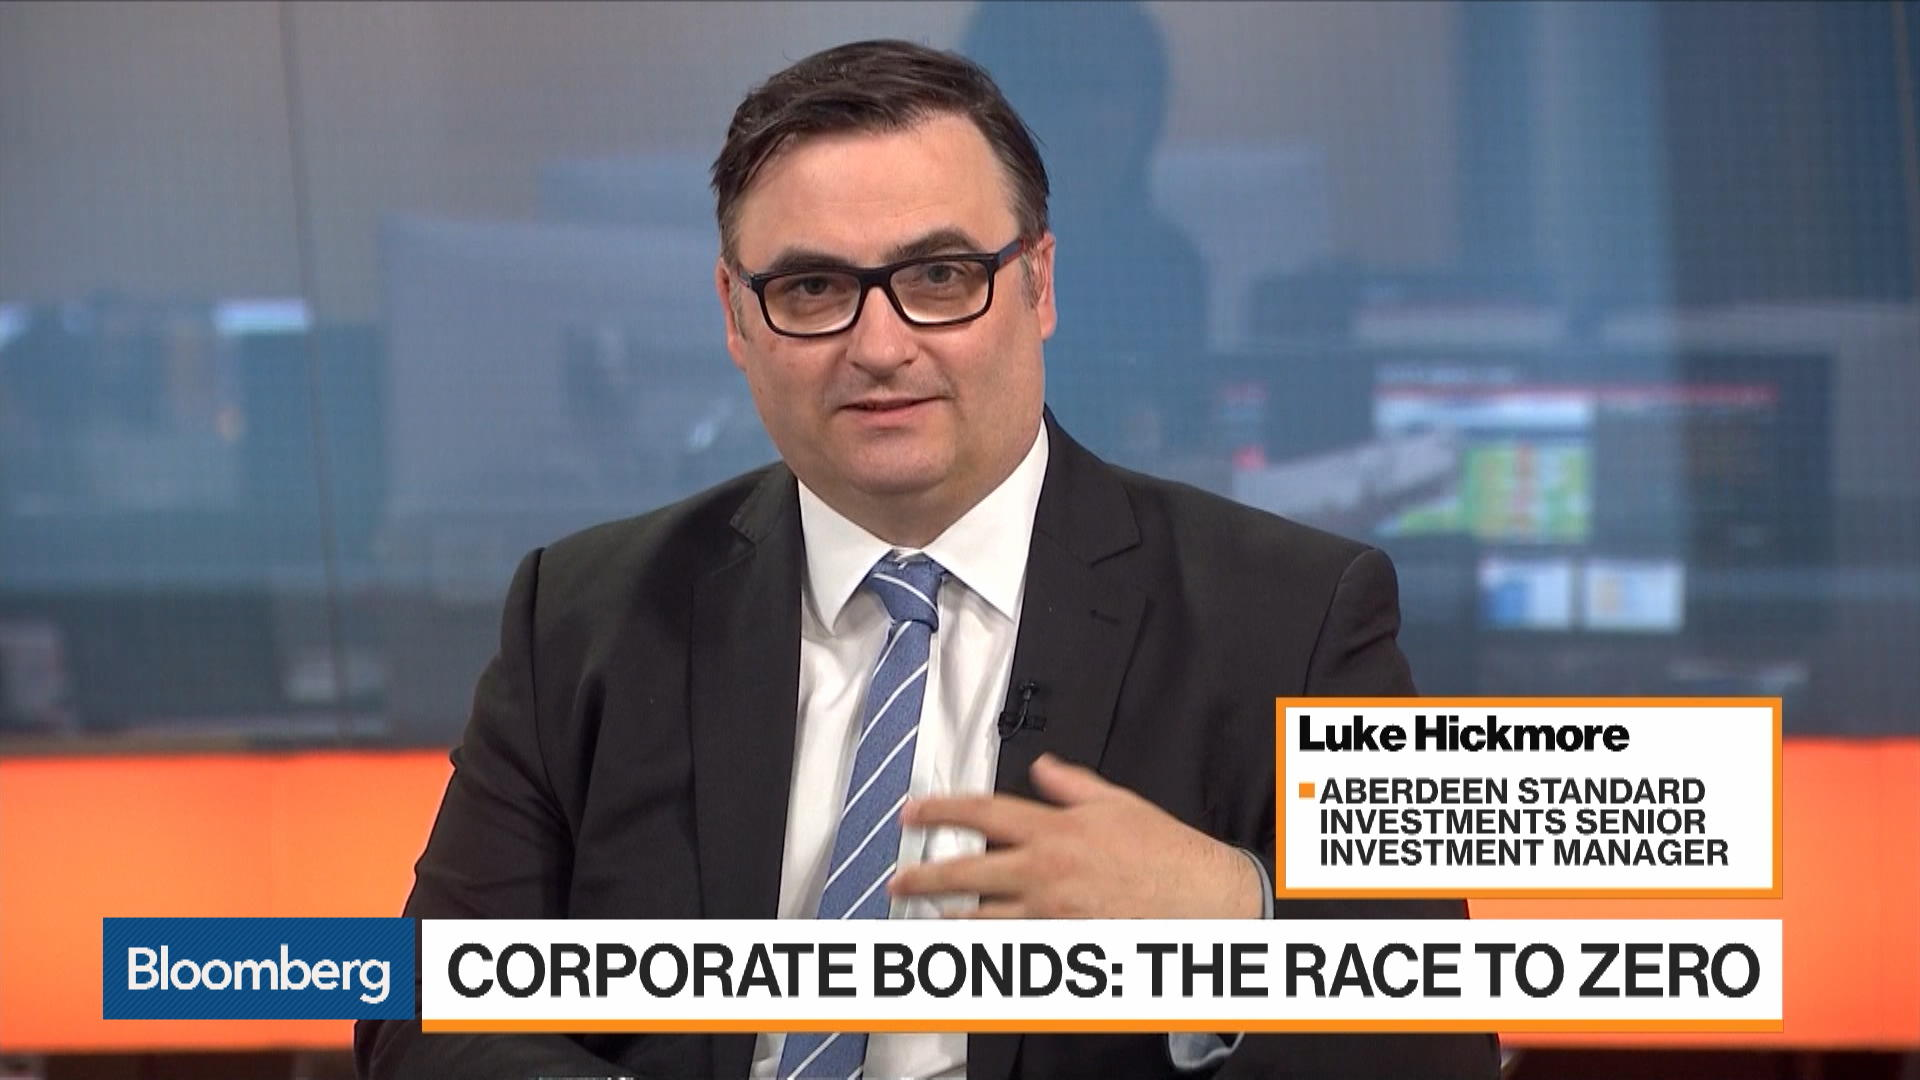 Aberdeen Standard Investments's Senior Investment Manager Luke Hickmore on Corporate Bonds